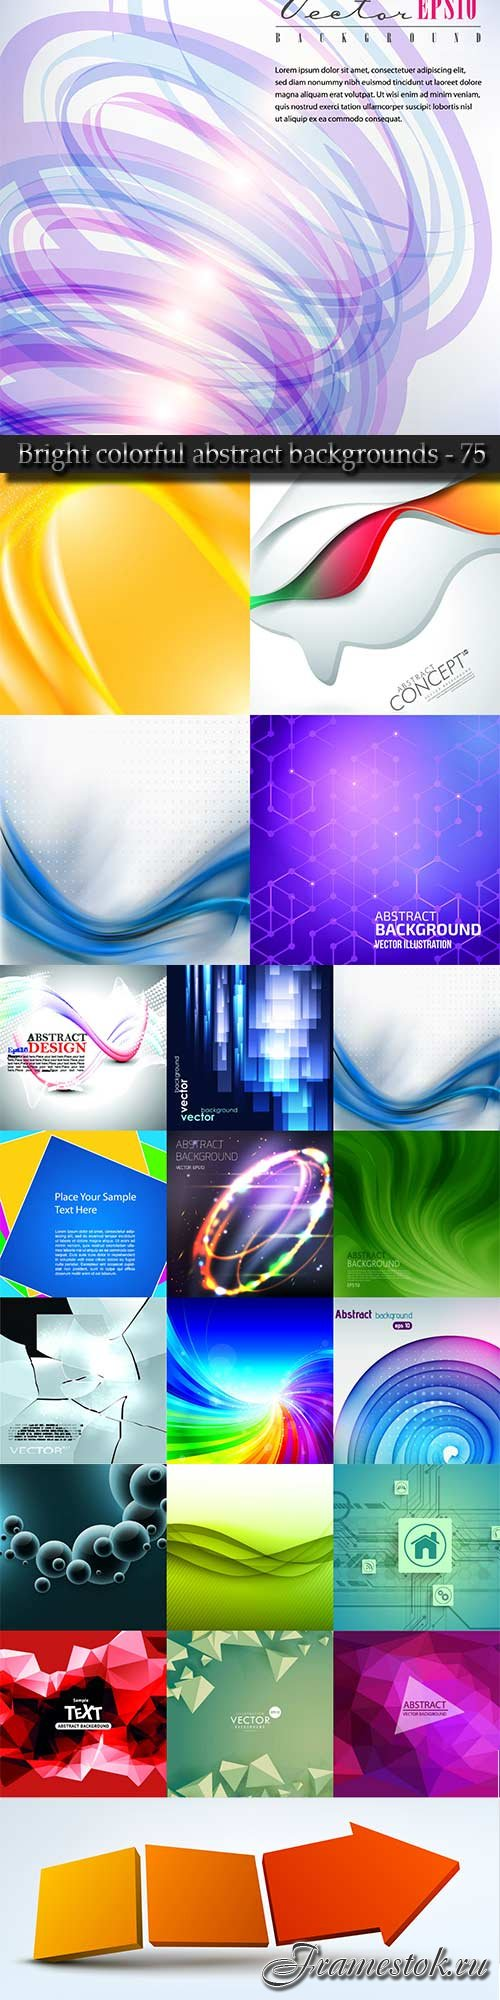 Bright colorful abstract backgrounds vector - 75